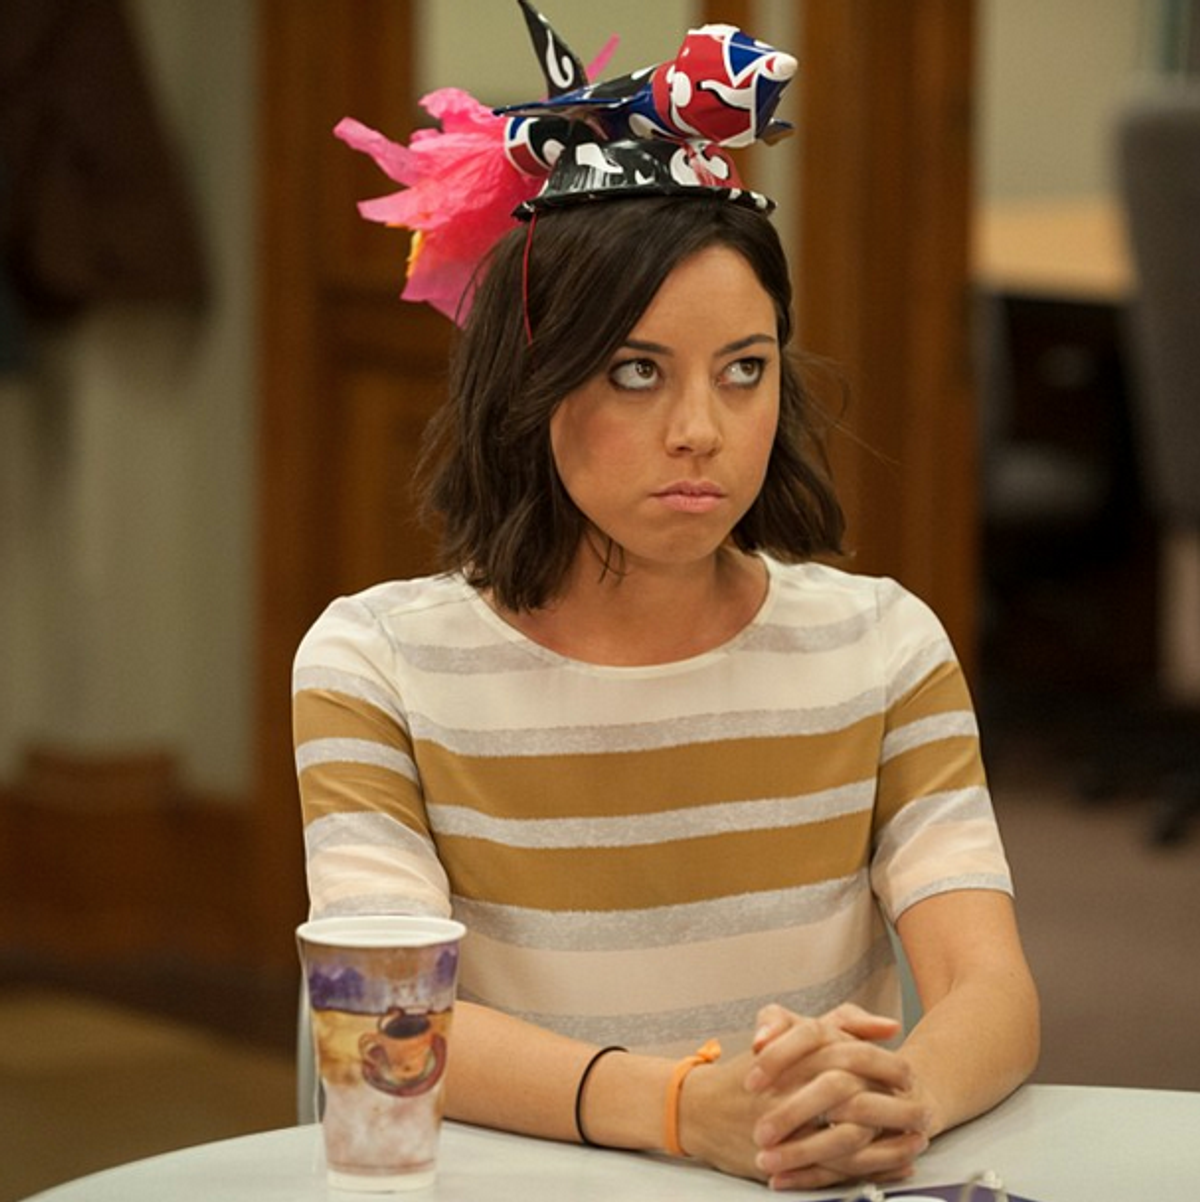 The Realities of Turning 21 As Told by April Ludgate from Parks and Rec